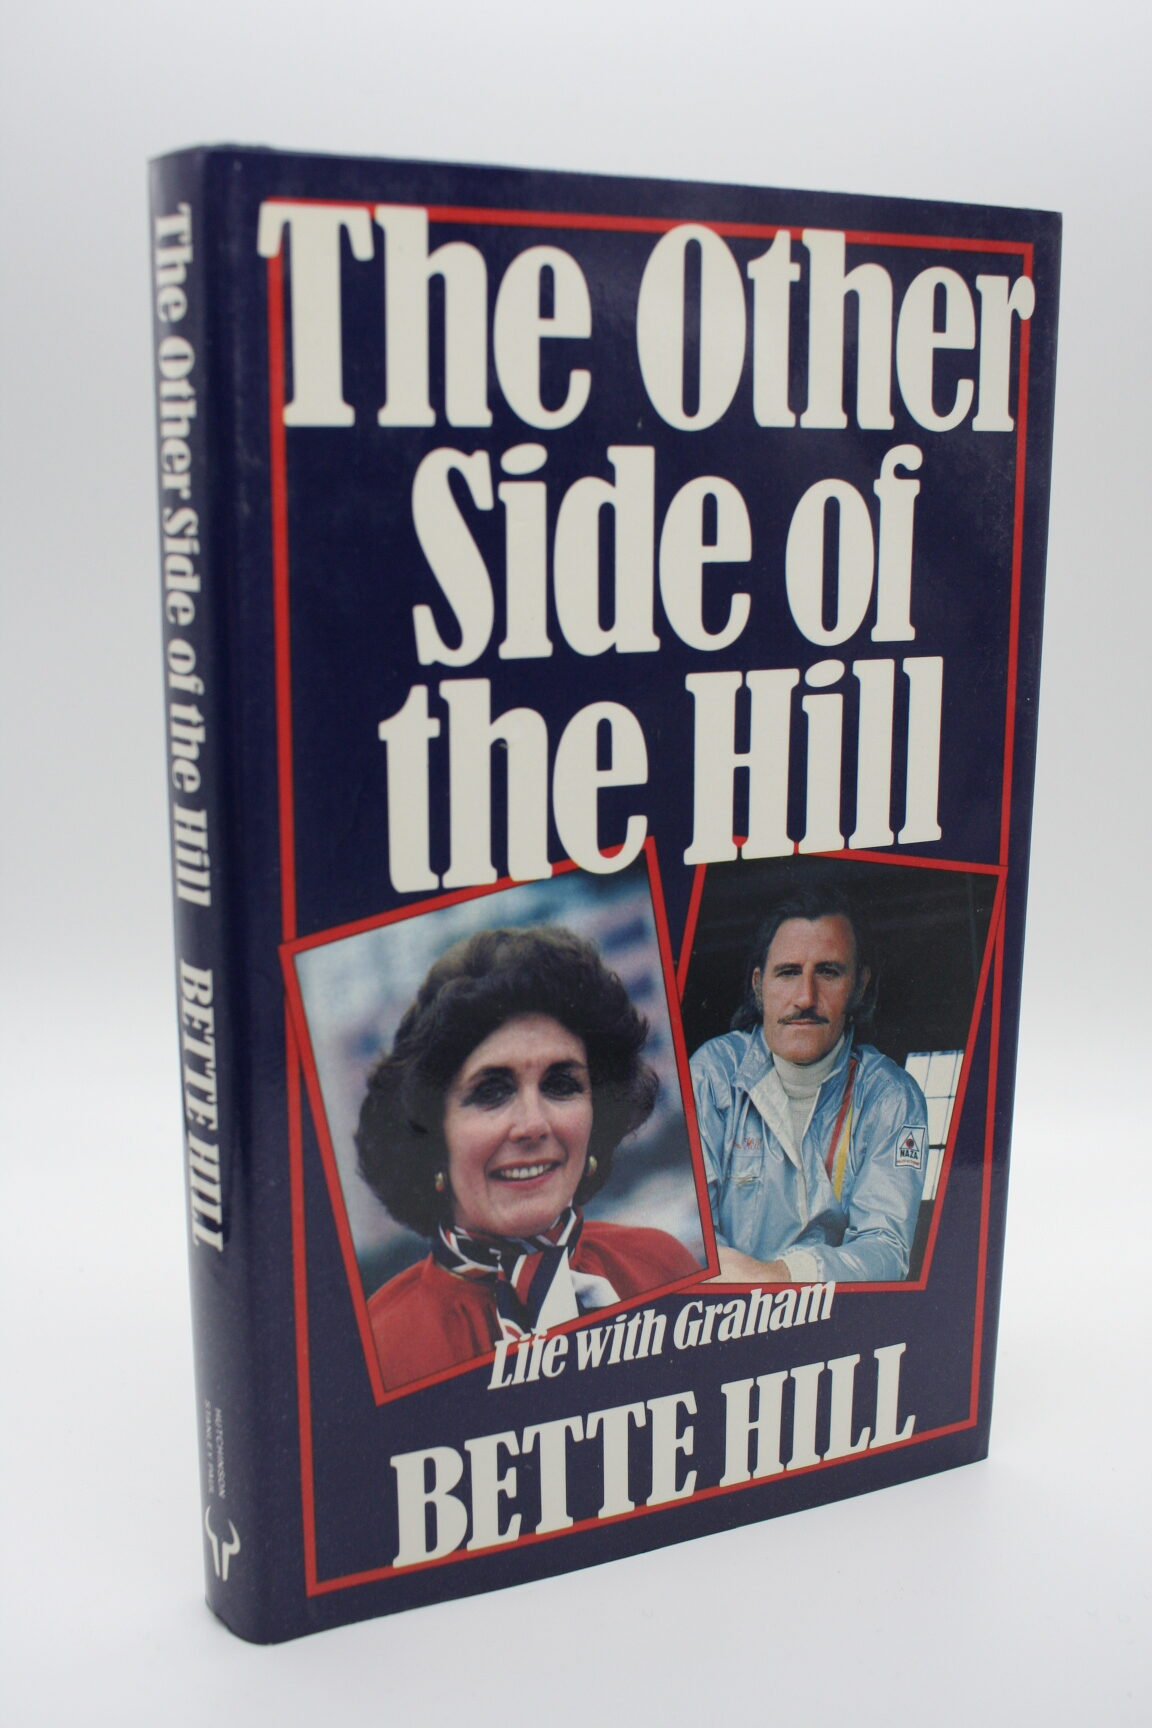 The Other Side Of The Hill - Bette Hill